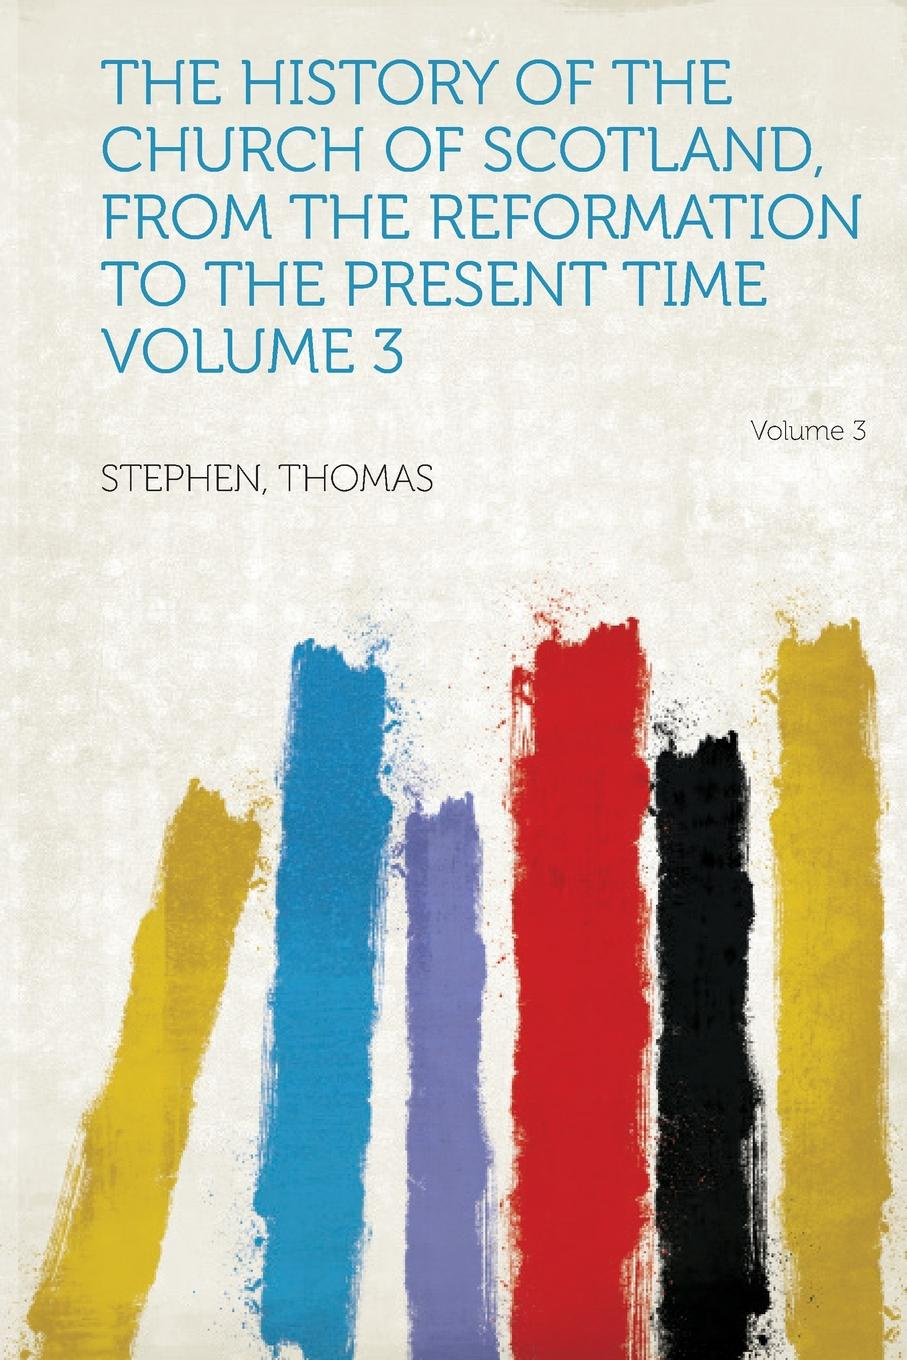 Stephen Thomas The History of the Church Scotland, from Reformation to Present Time Volume 3